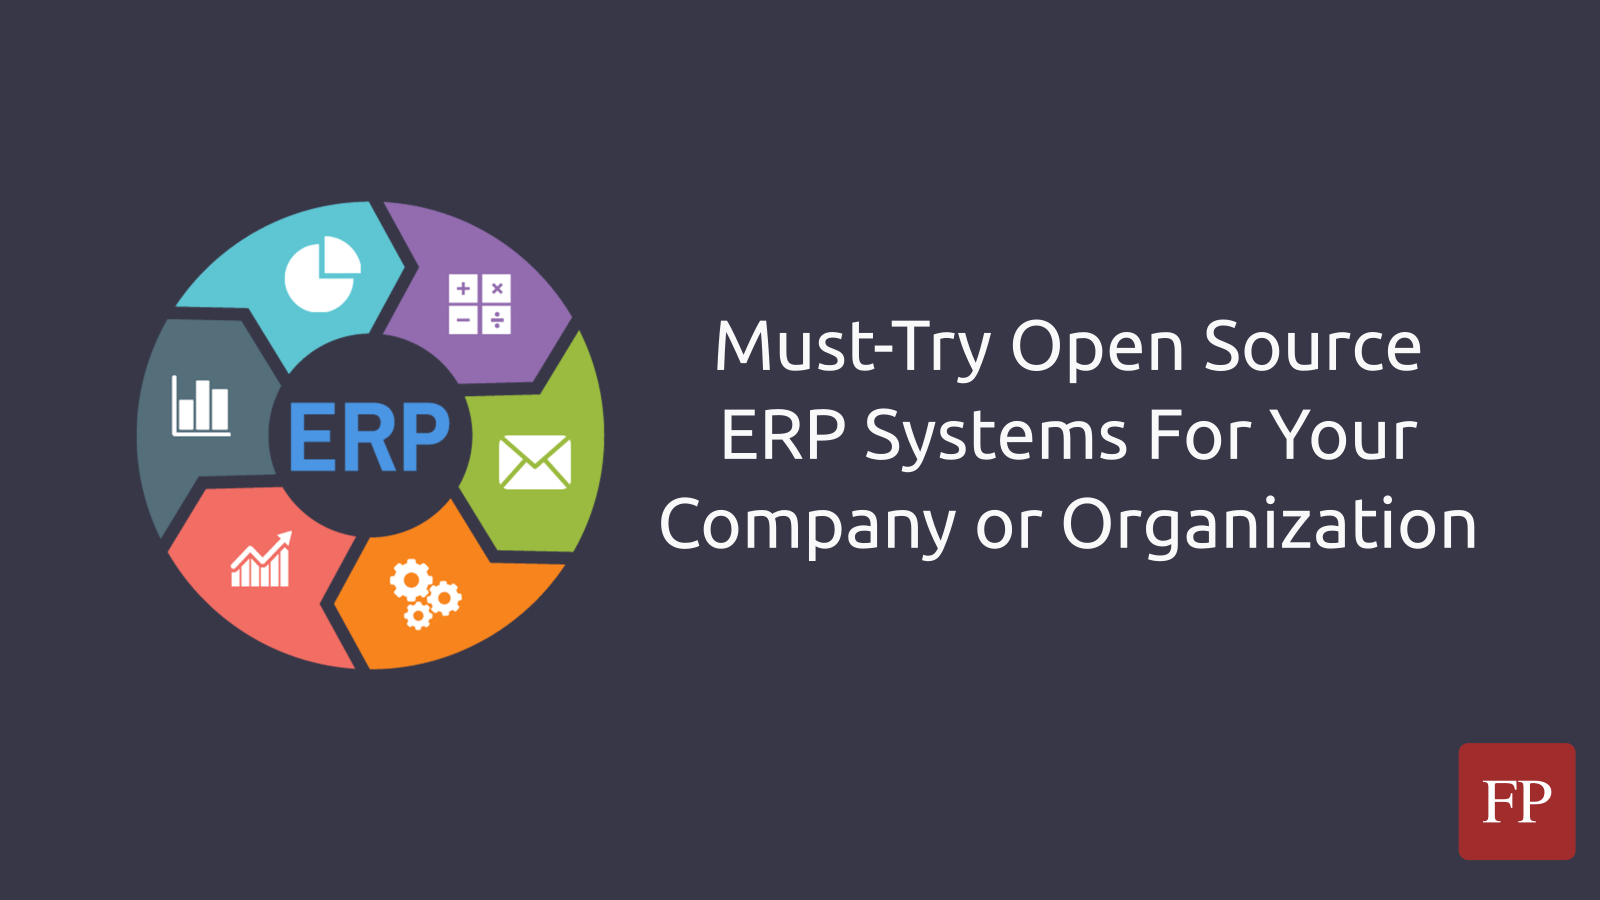 open source erp 20 January 19, 2021